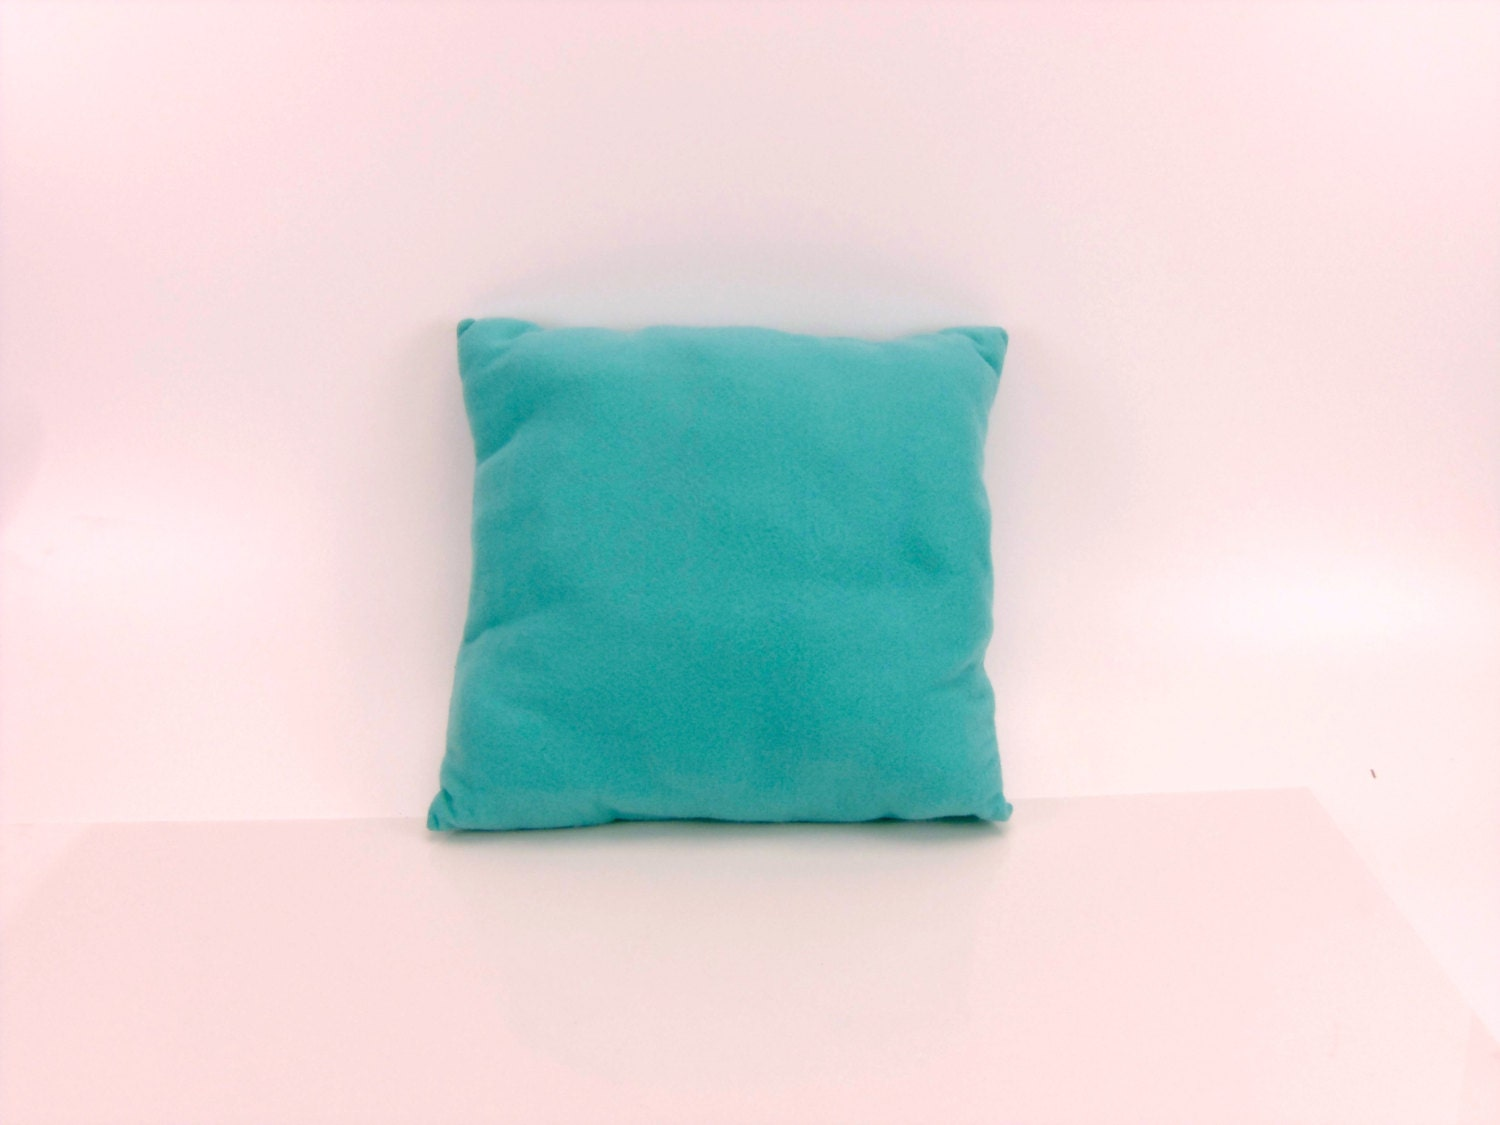 Decorative Bed Pillow Gift For Kids Turquoise Fleece Square